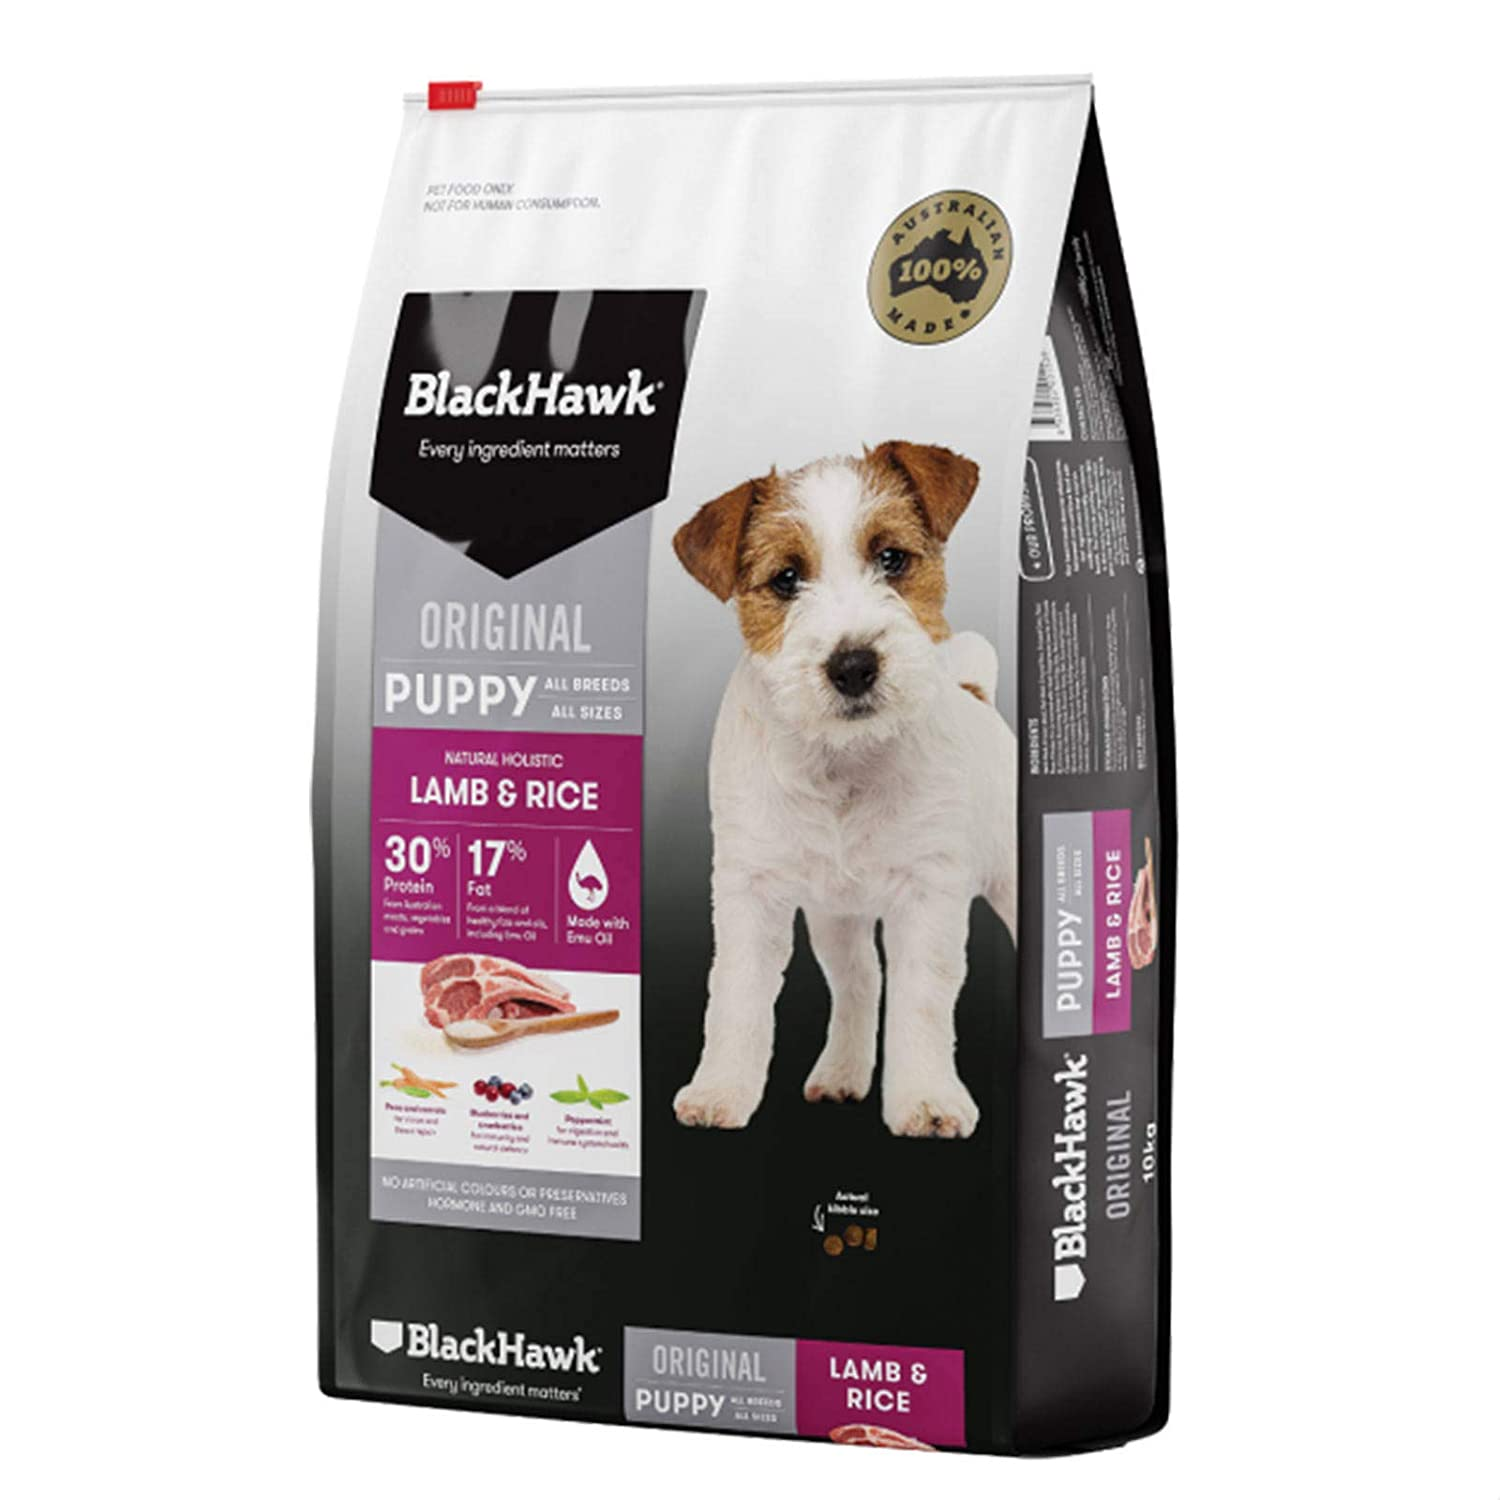 20kg Black Hawk Dog Dry Food, 20.0 kilograms